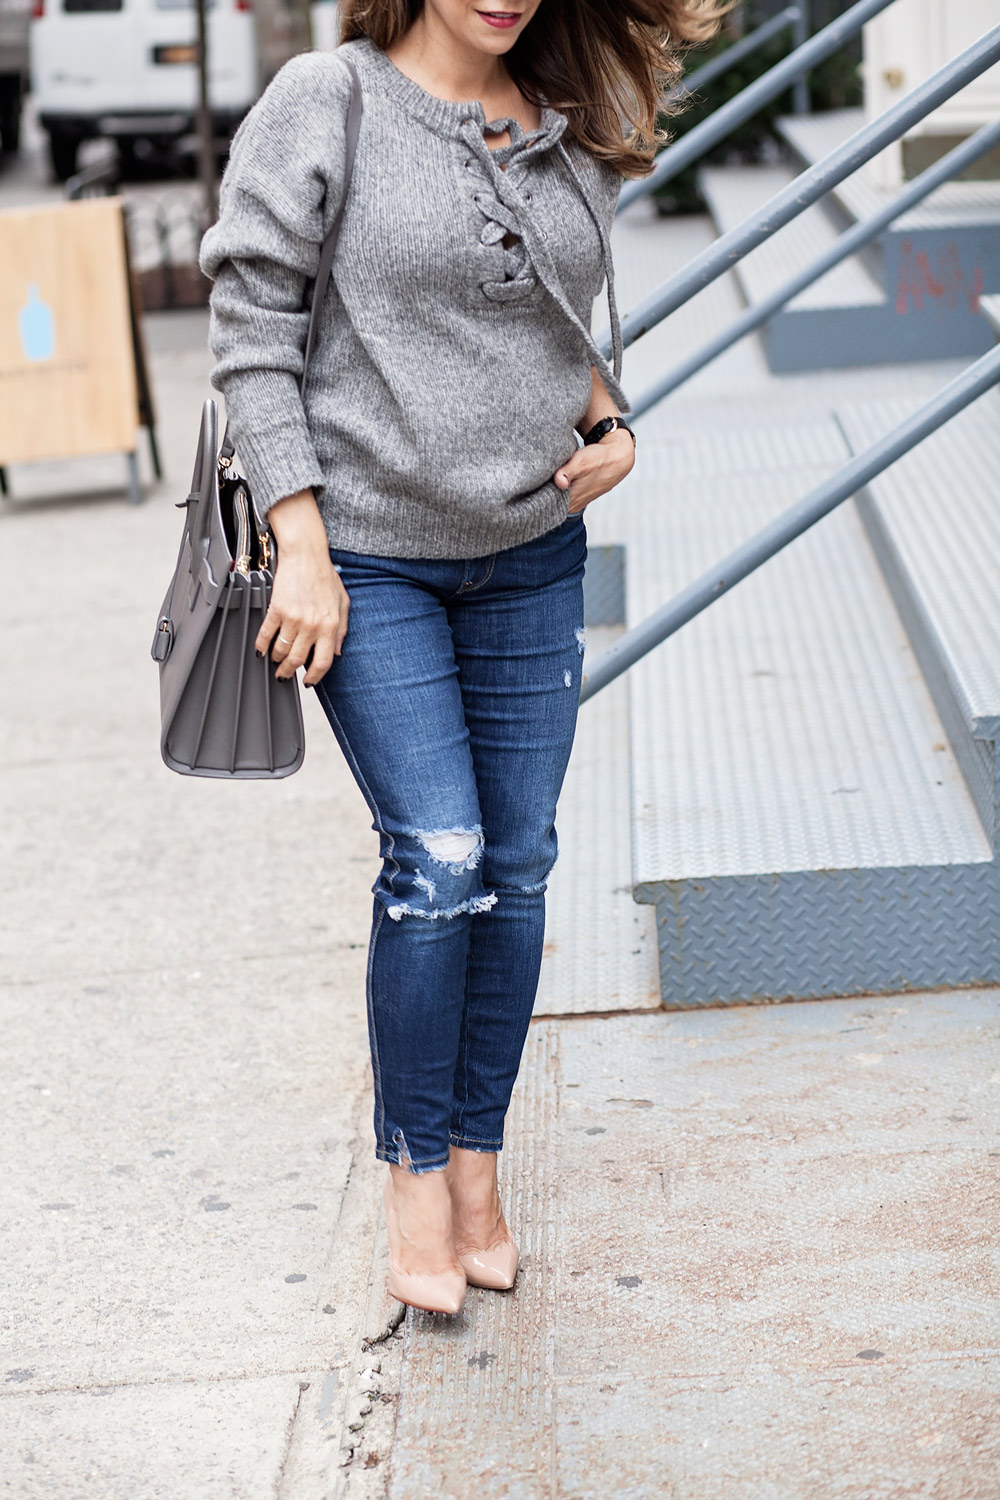 lace-up-sweater-ripped-denim-street-style-casual-style-new-york-city-corporate-catwalk-5